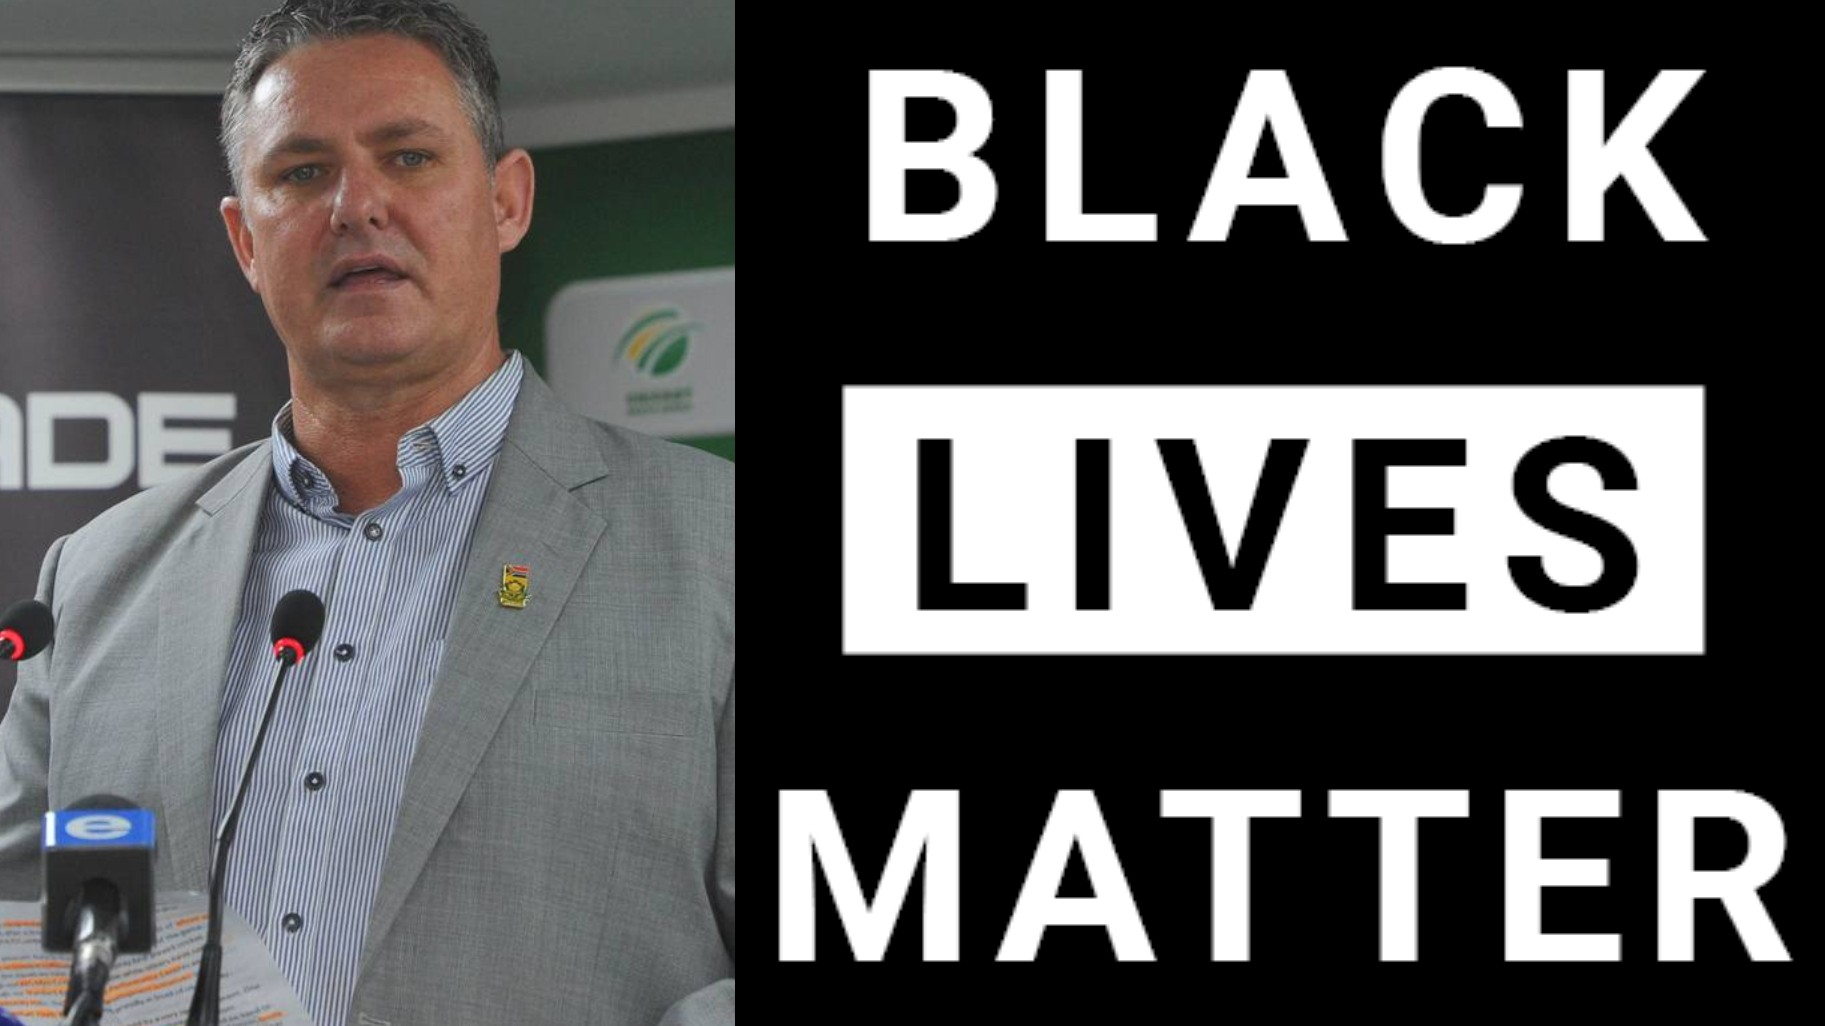 Cricket South Africa shows solidarity with Black Lives Matter movement, confirms CEO Jacques Faul